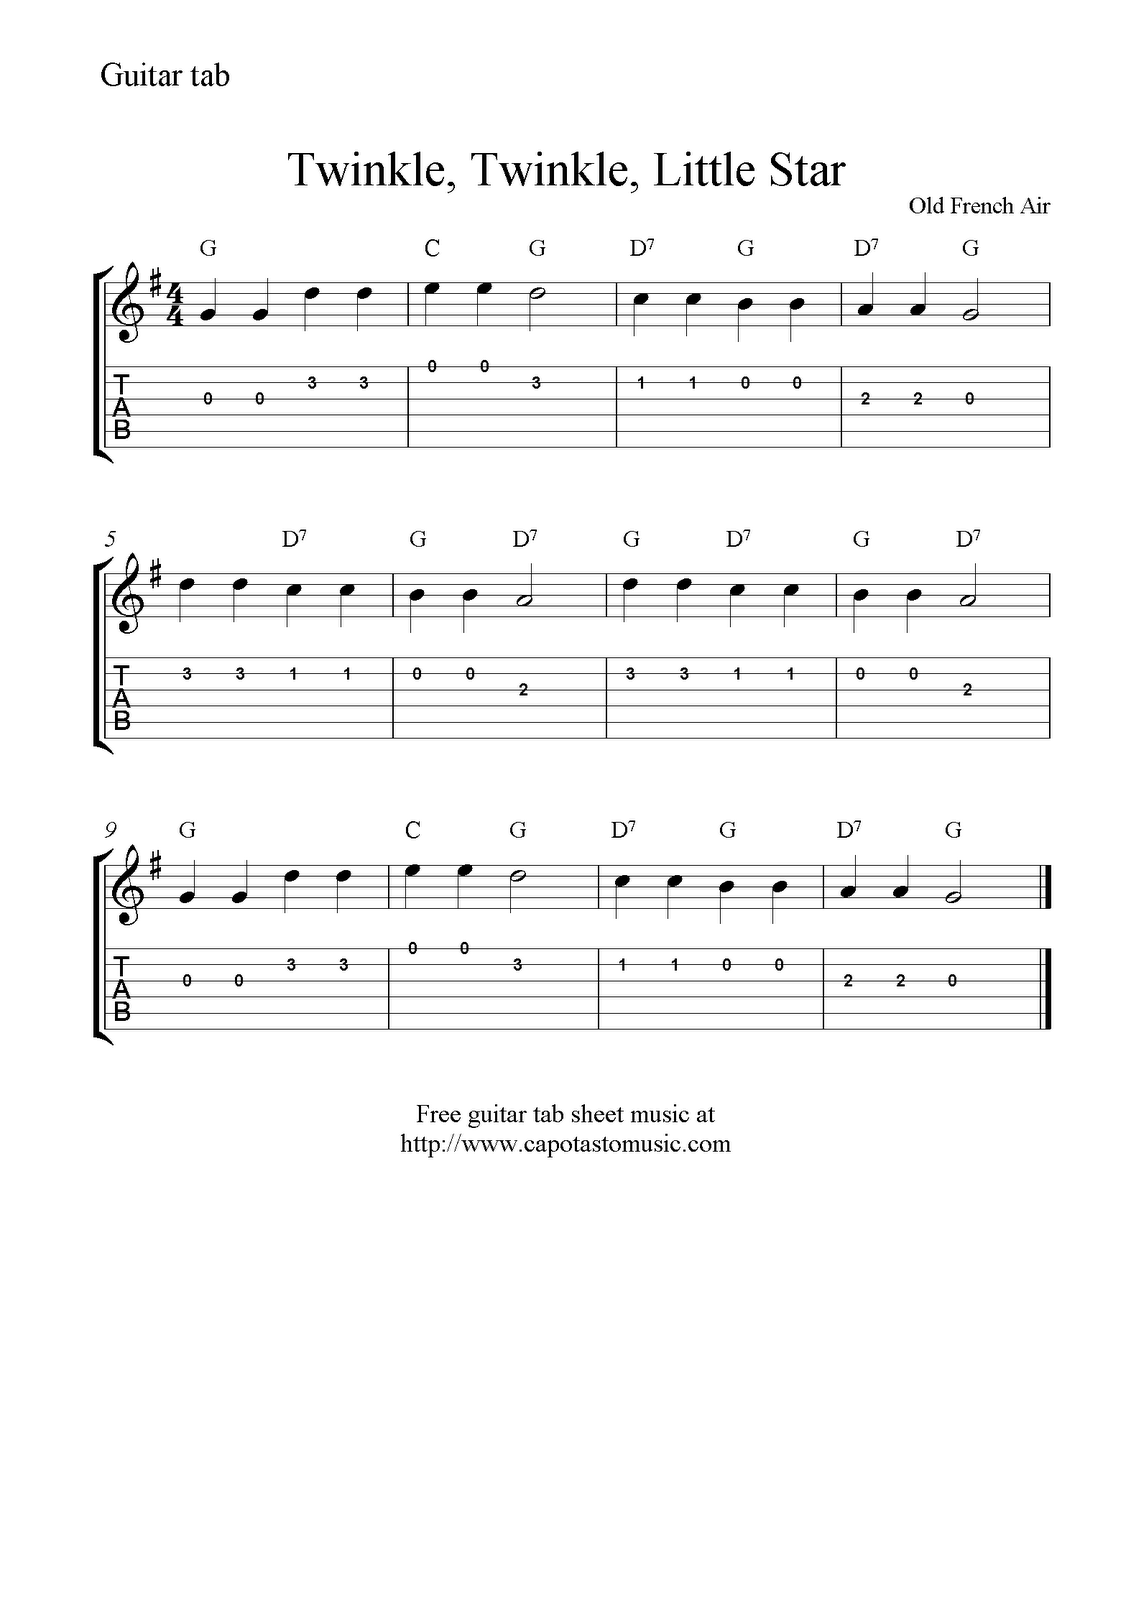 Twinkle, Twinkle, Little Star, free easy guitar tab sheet music